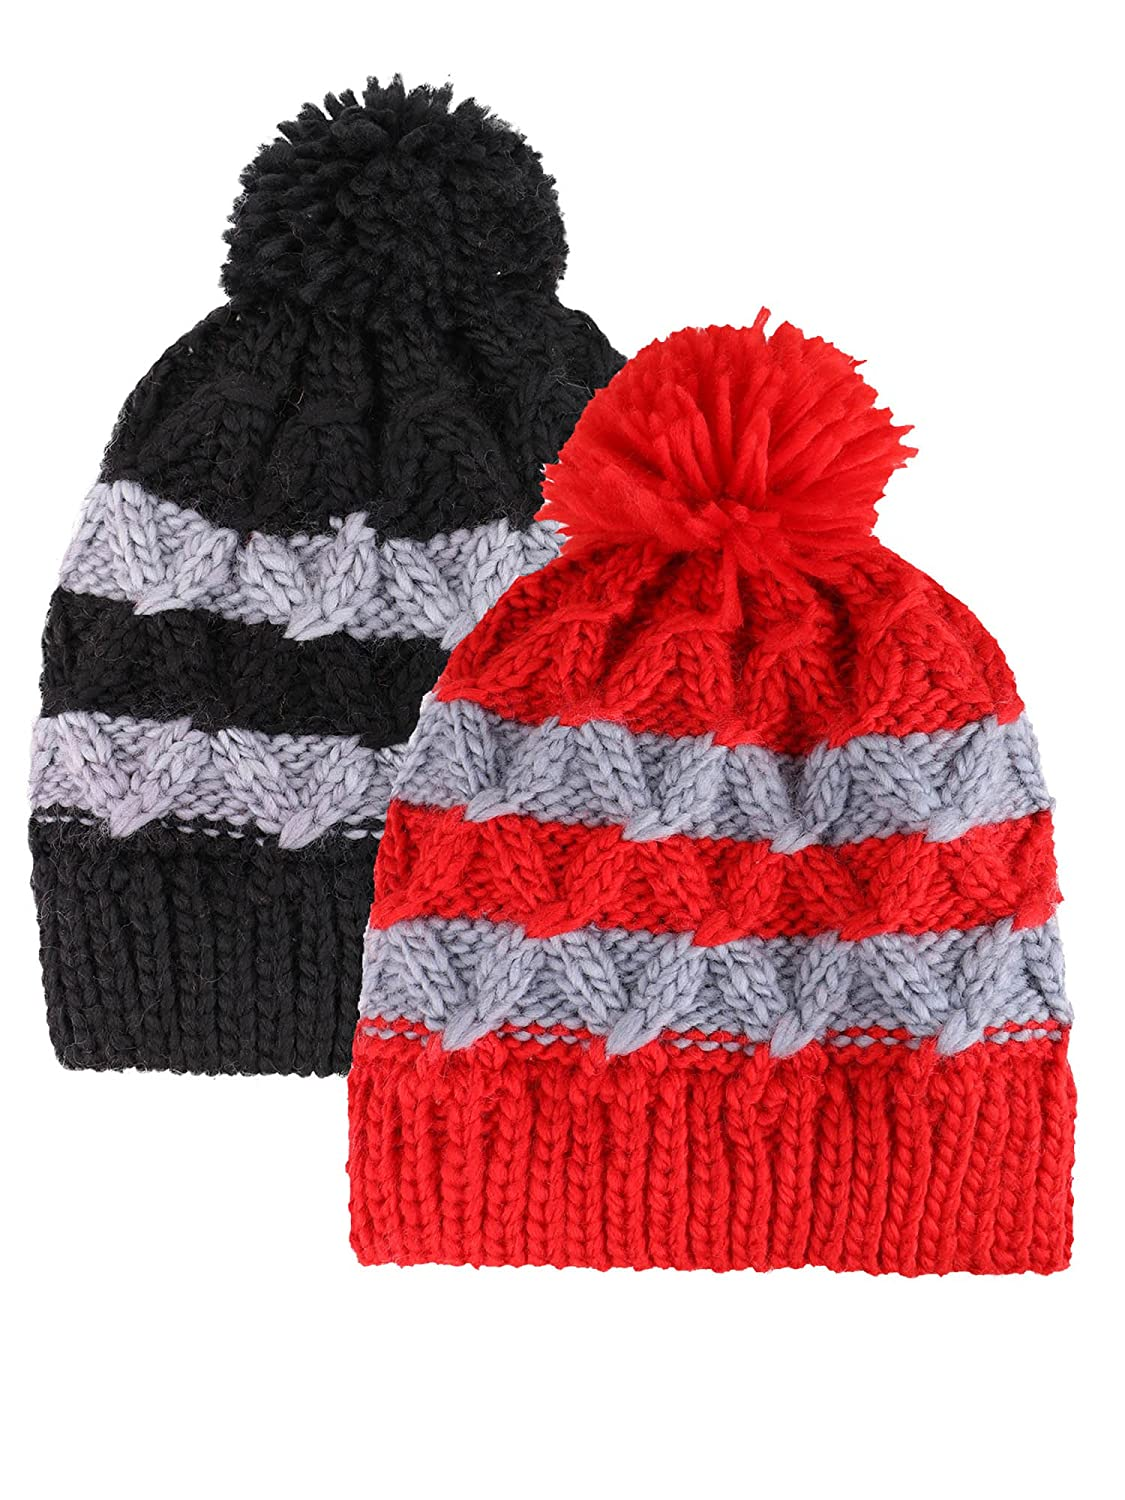 Kids Knit Beanies Boys/Girls Winter Hat Toddlers Cap 2 Pack - Assorted Patterns